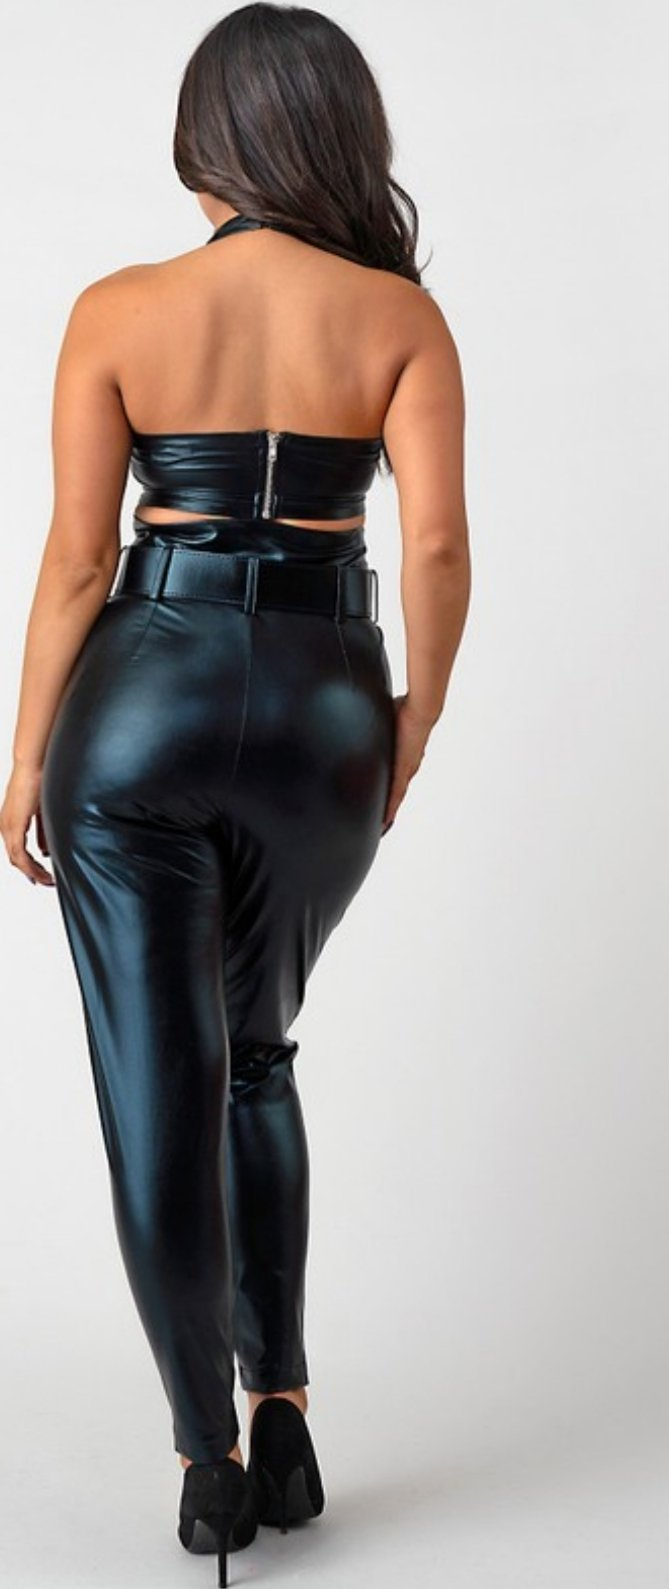 Women's Solid Black Leather Sleeveless Caged Crop Top With Slim Pants Set